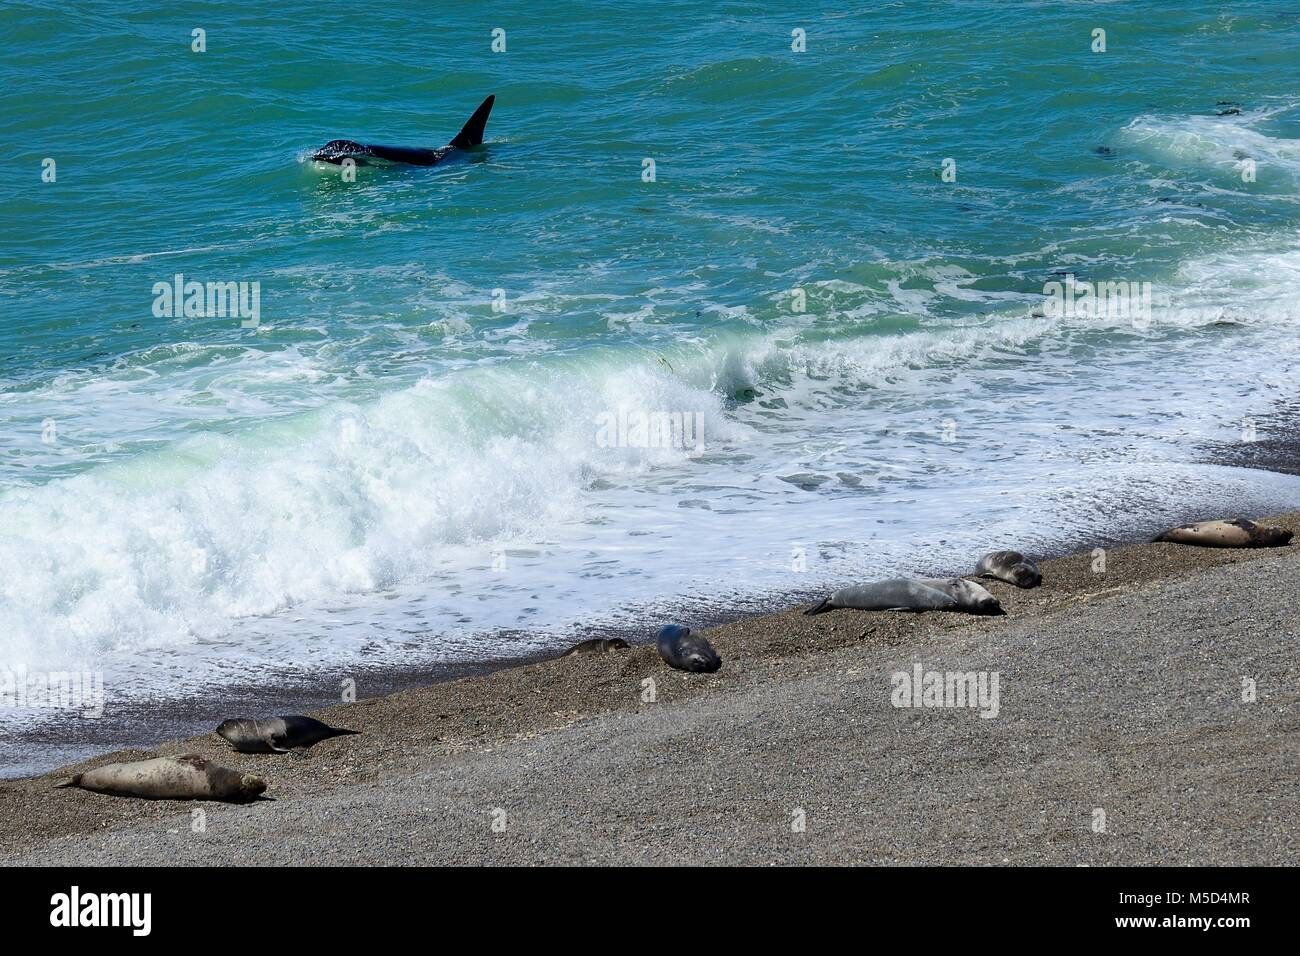 Killer whale (Orcinus orca) searching for prey in front of gravel bank with Southern elephant seals (Mirounga leonina) - Stock Image